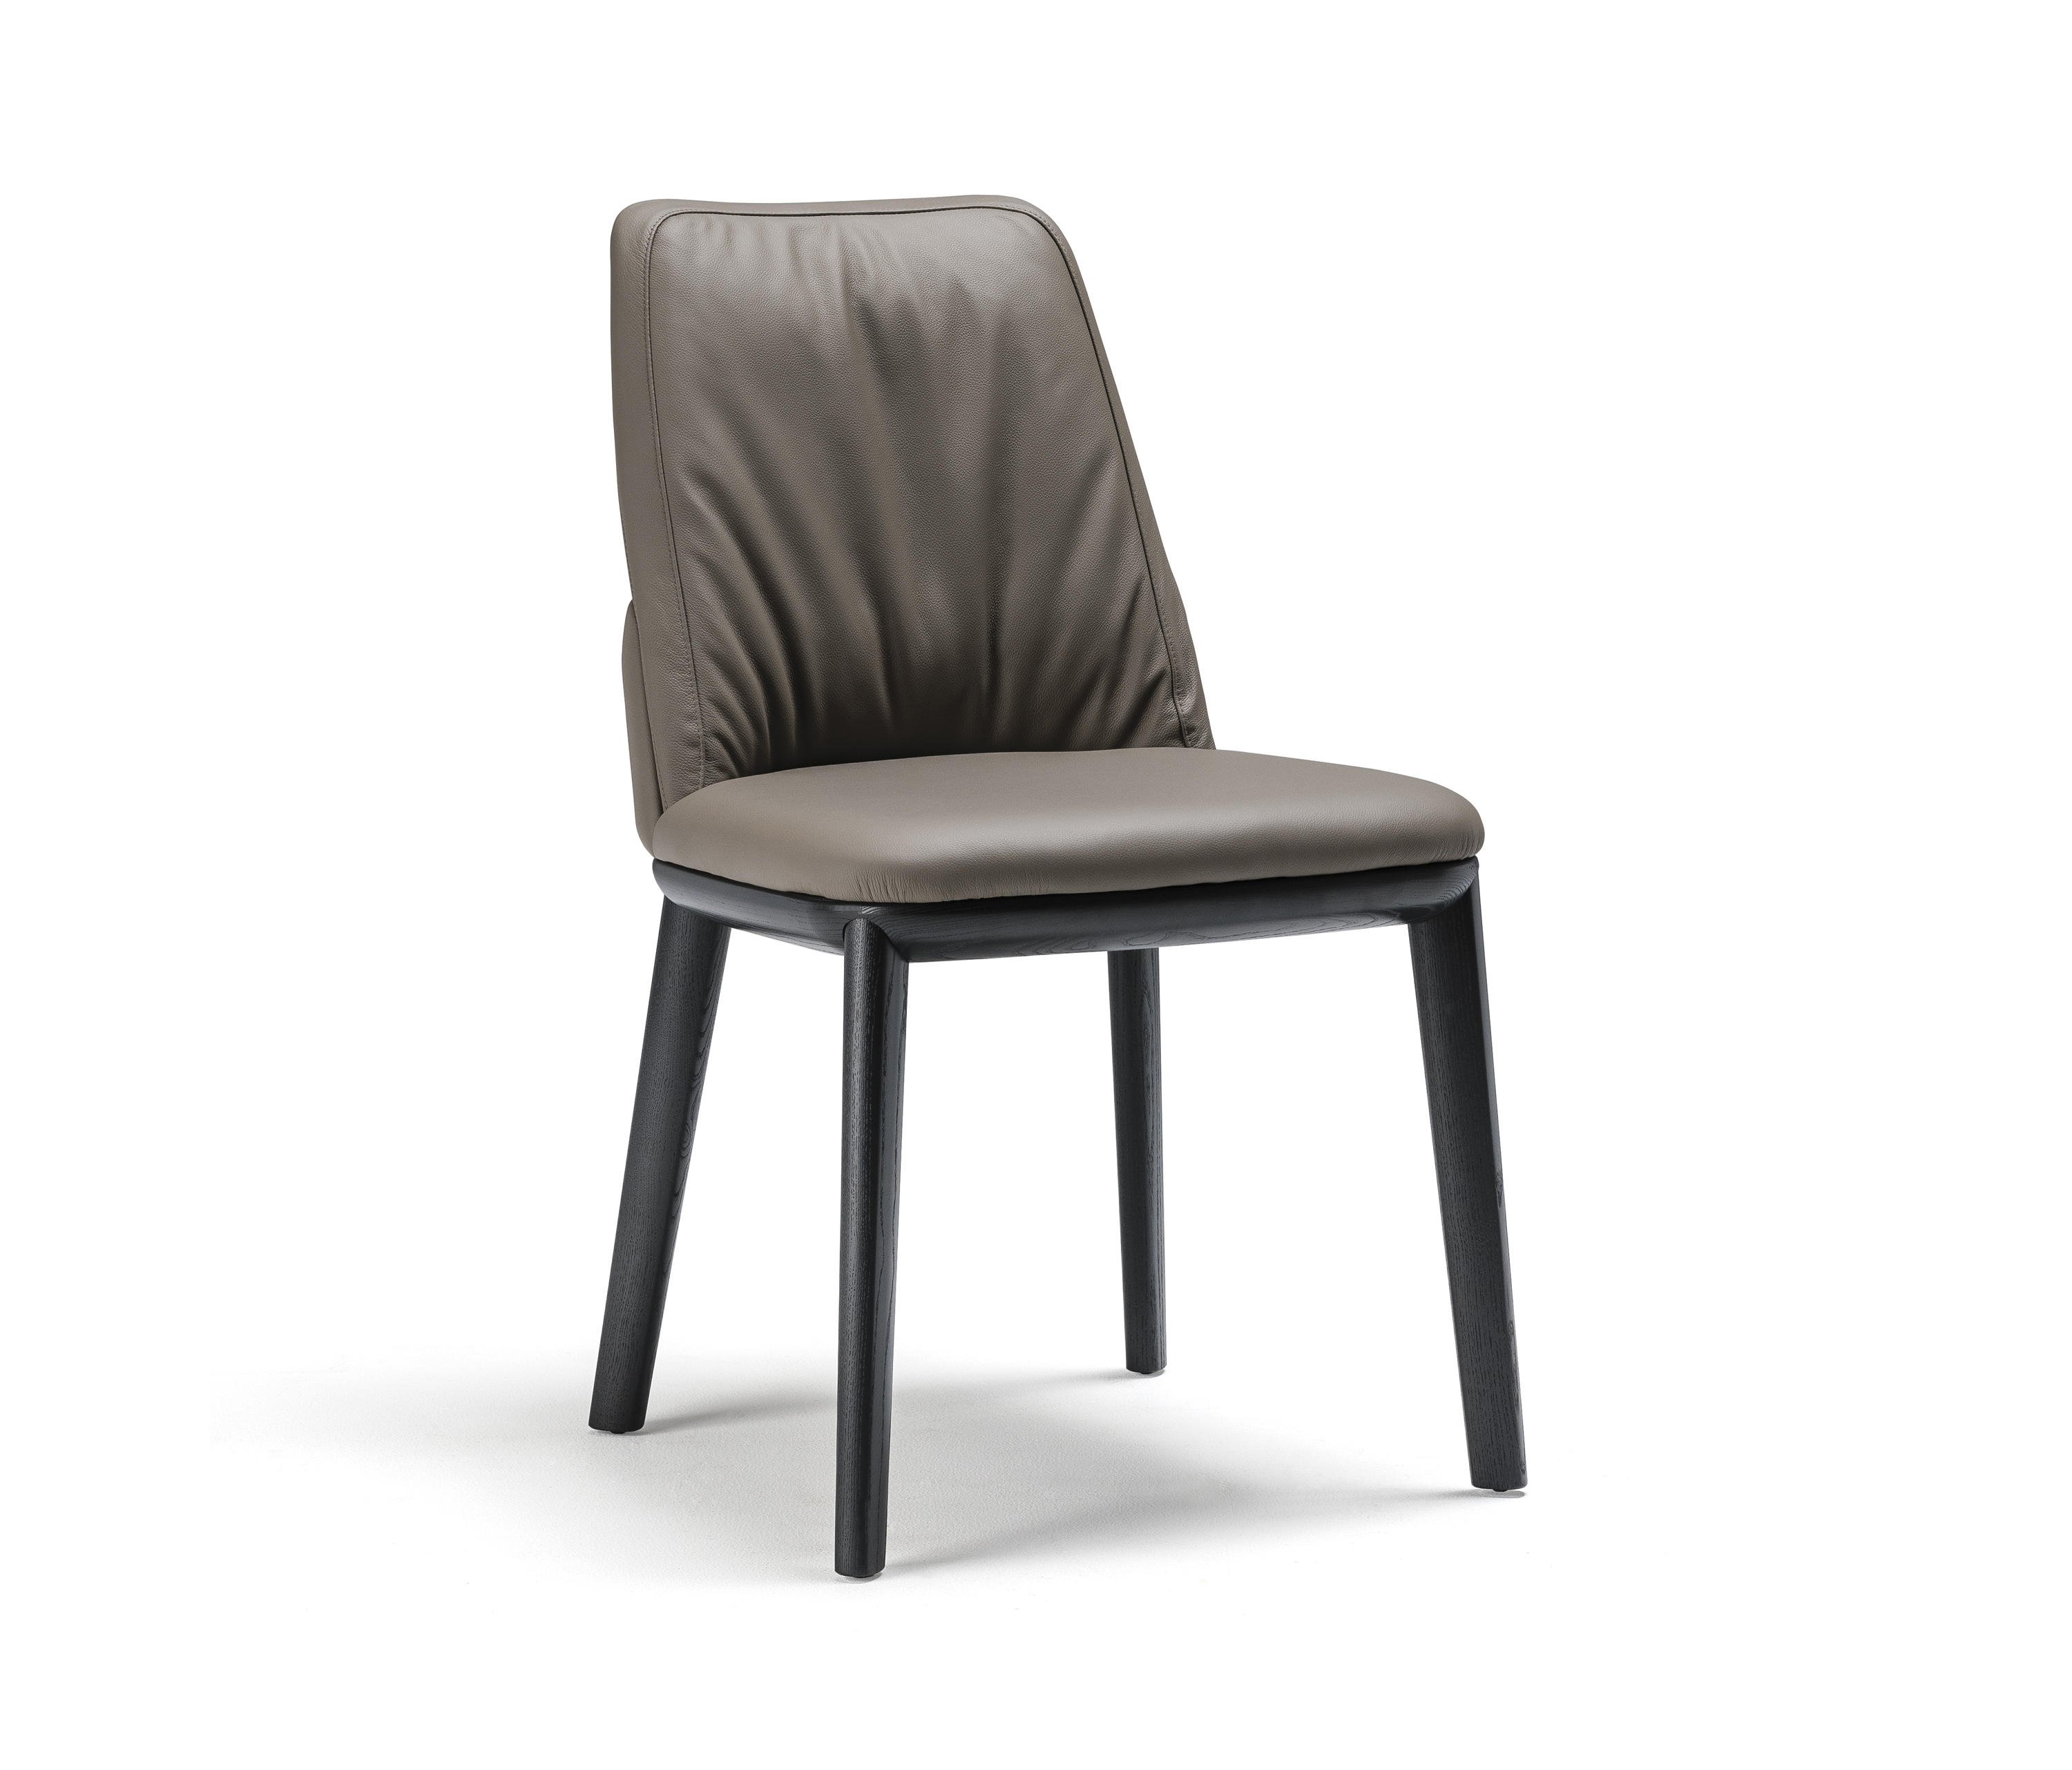 BELINDA - Chairs from Cattelan Italia | Architonic